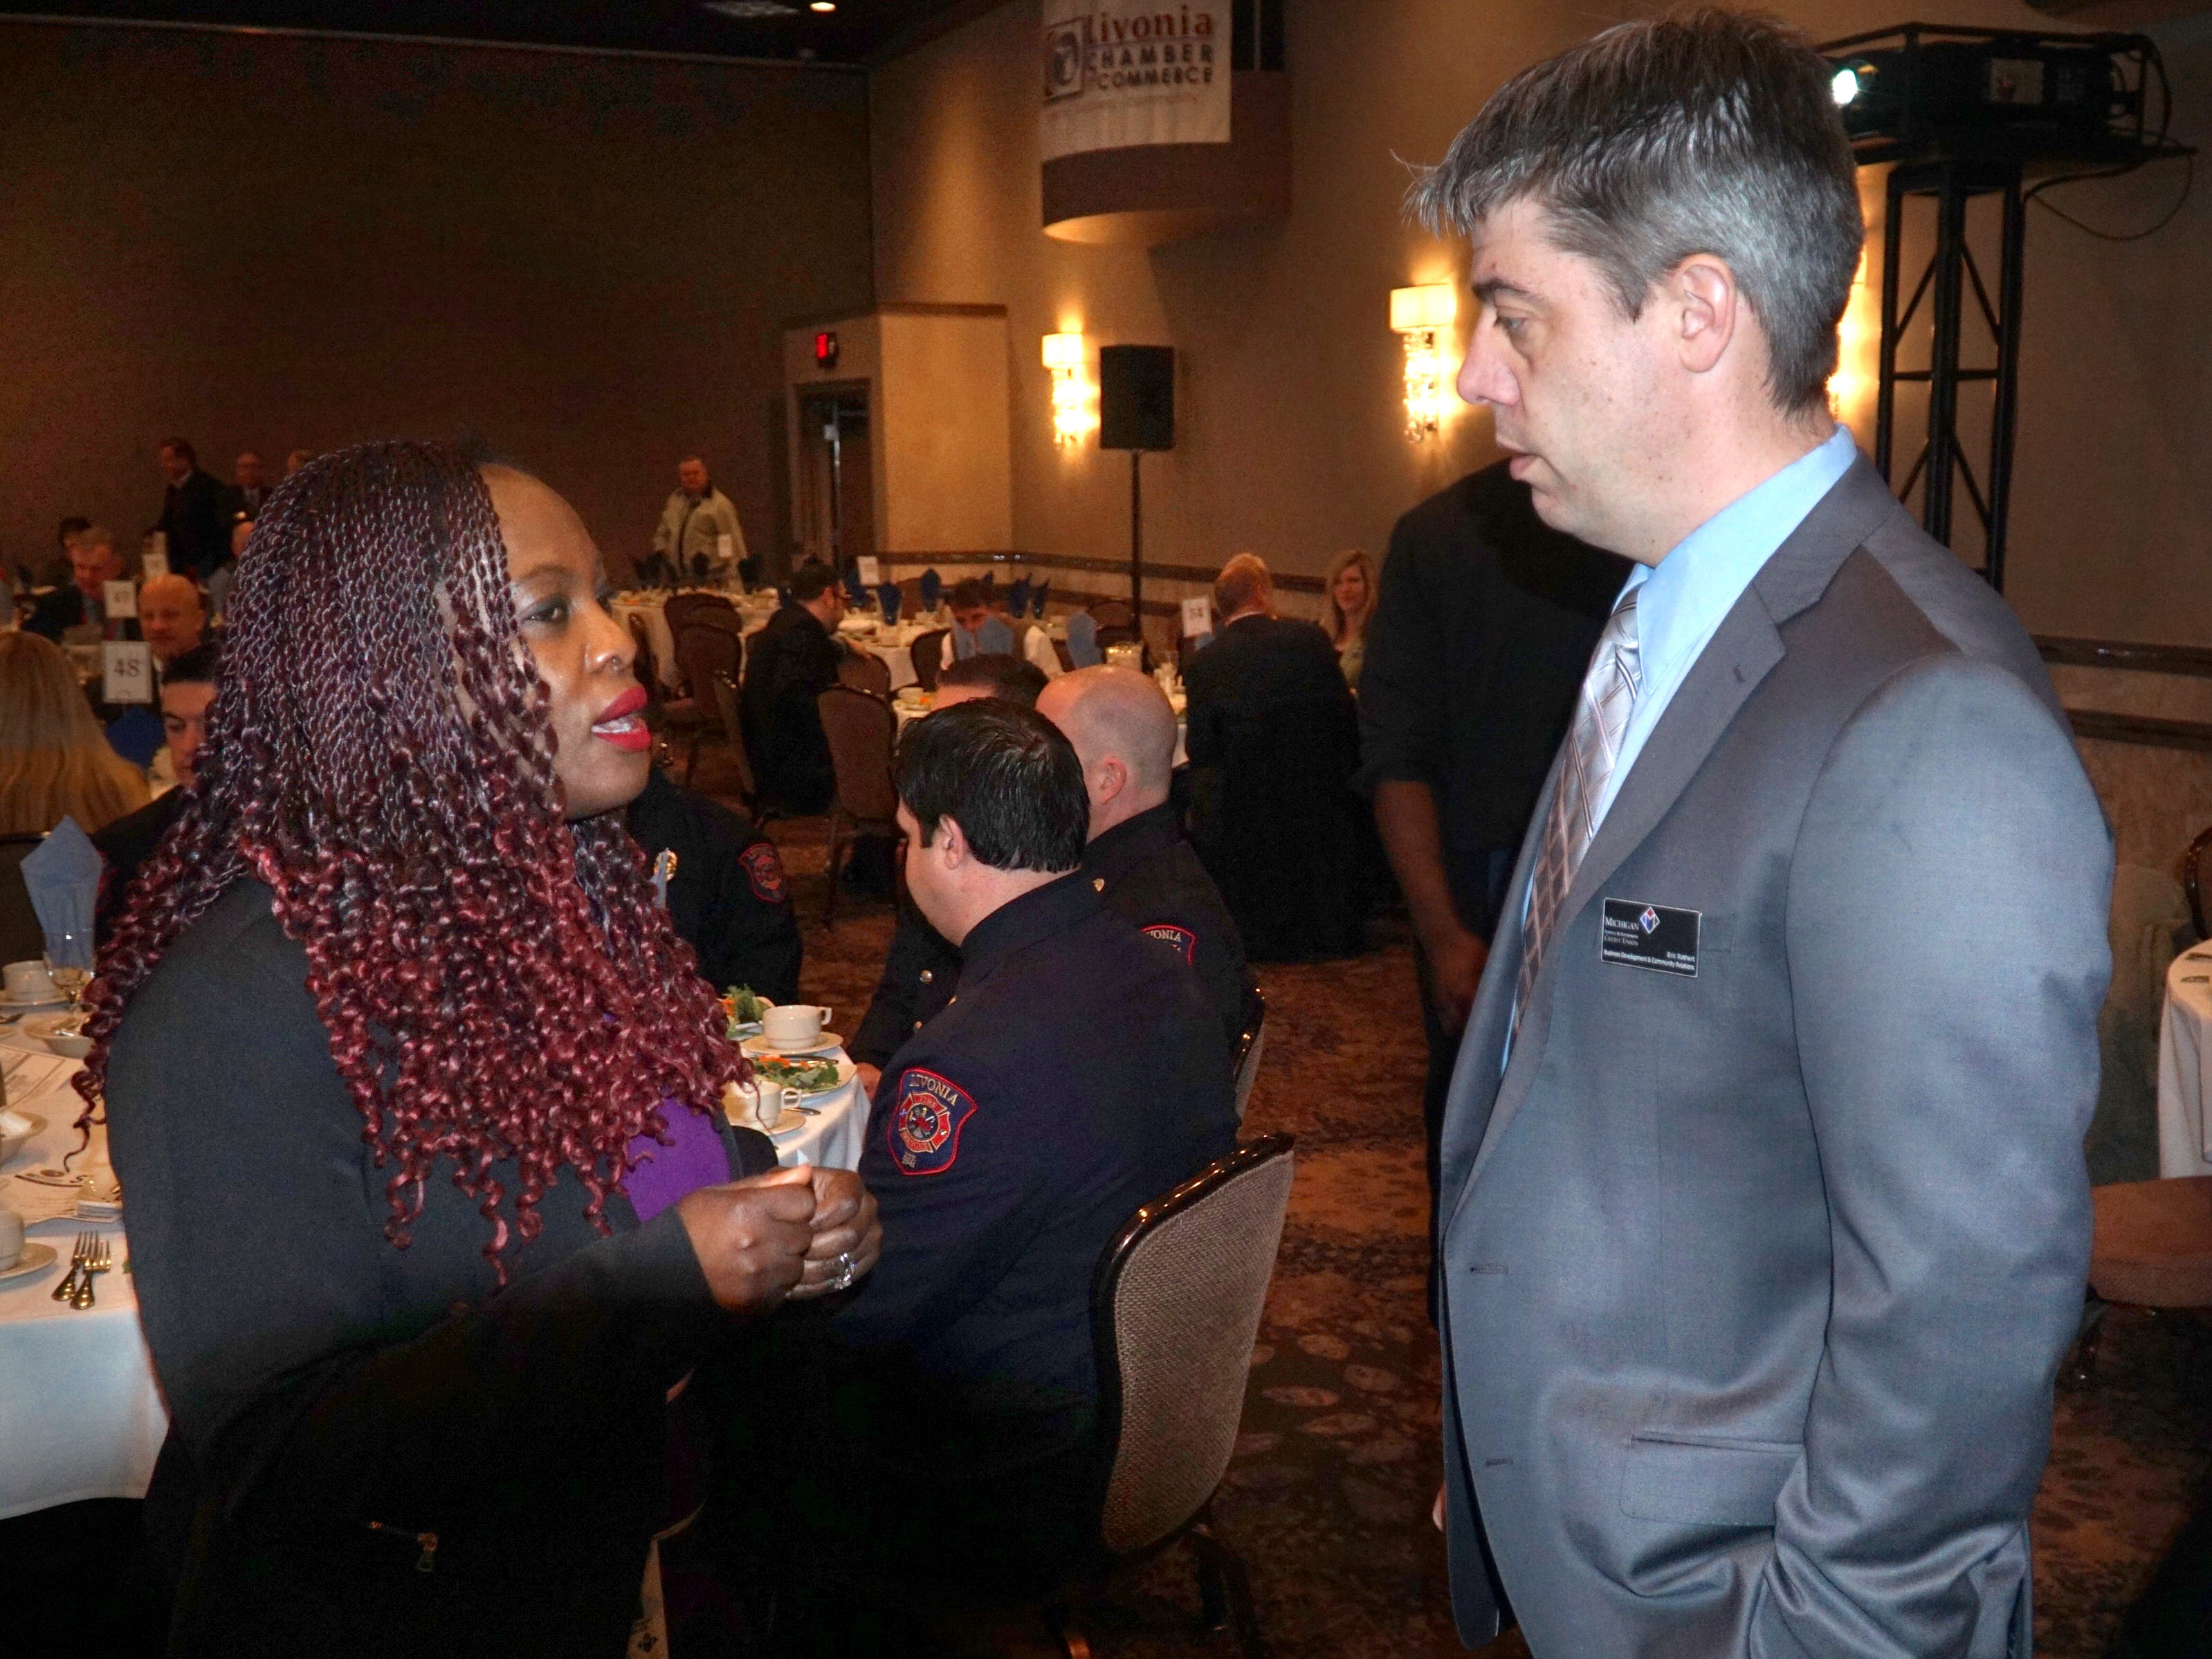 Marjorie Riezkhoff and Eric Rothert, both colleagues at the Michigan Schools and Government Credit Union talk before the begining of the State of the City address for Livonia at the Laurel Manor on March 13.